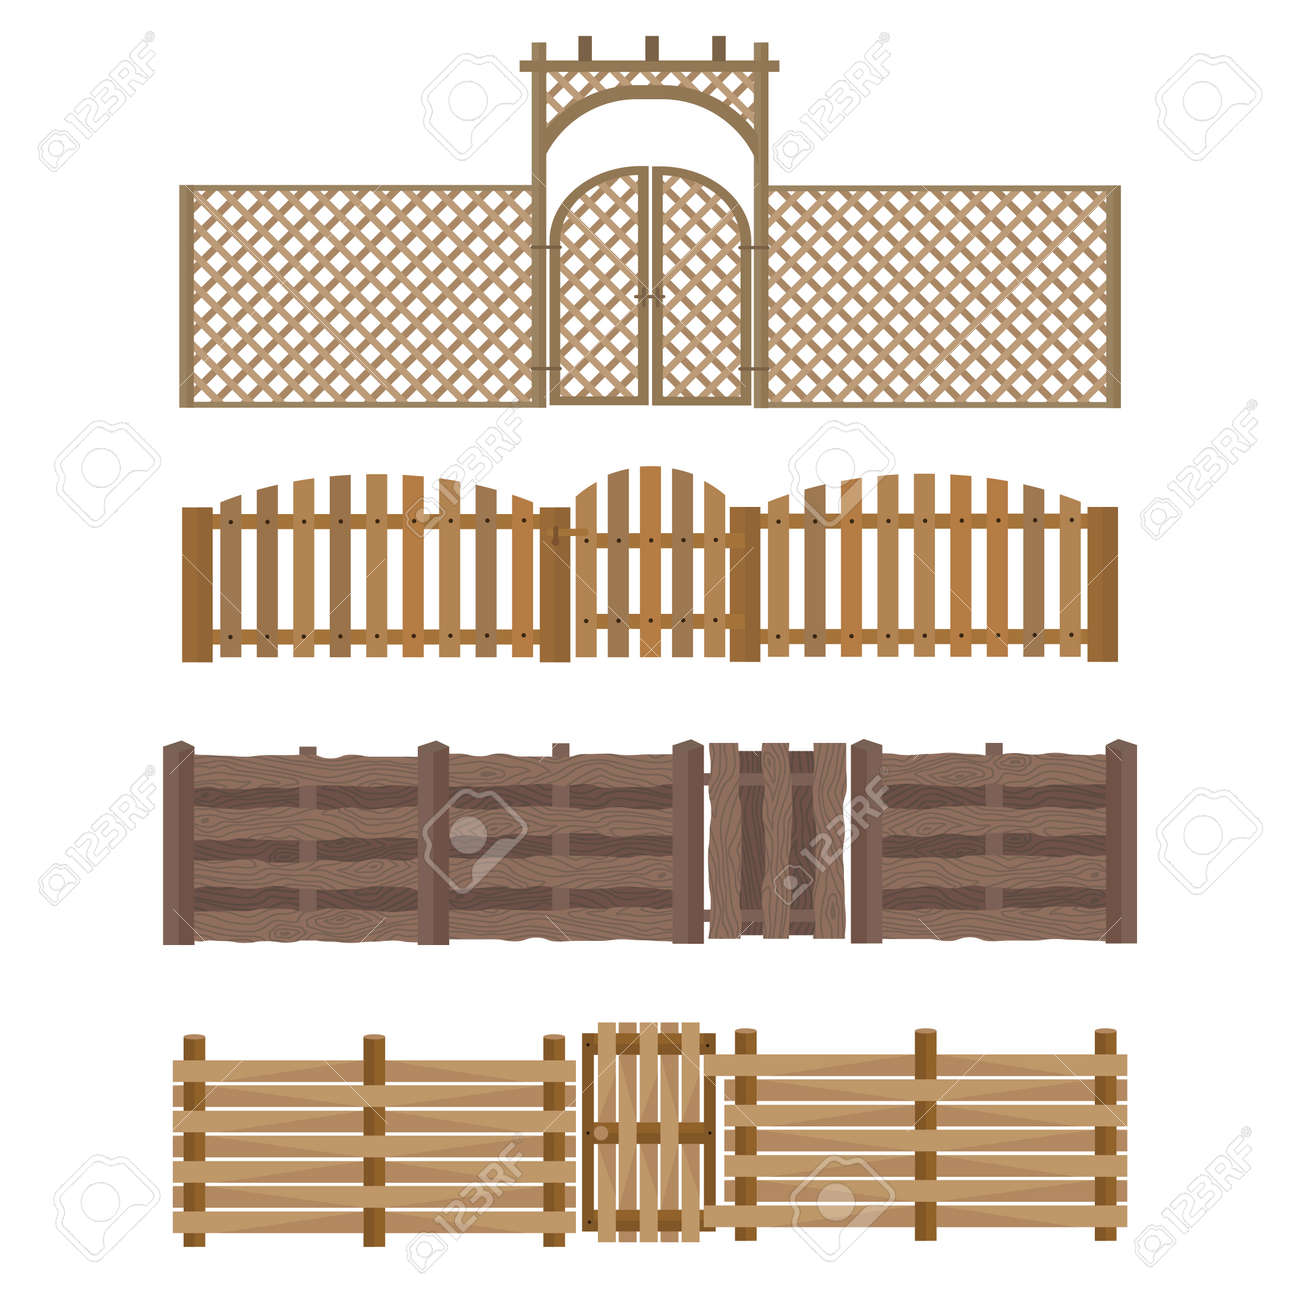 Different Designs Of Fences And Gates Isolated On White Background ...